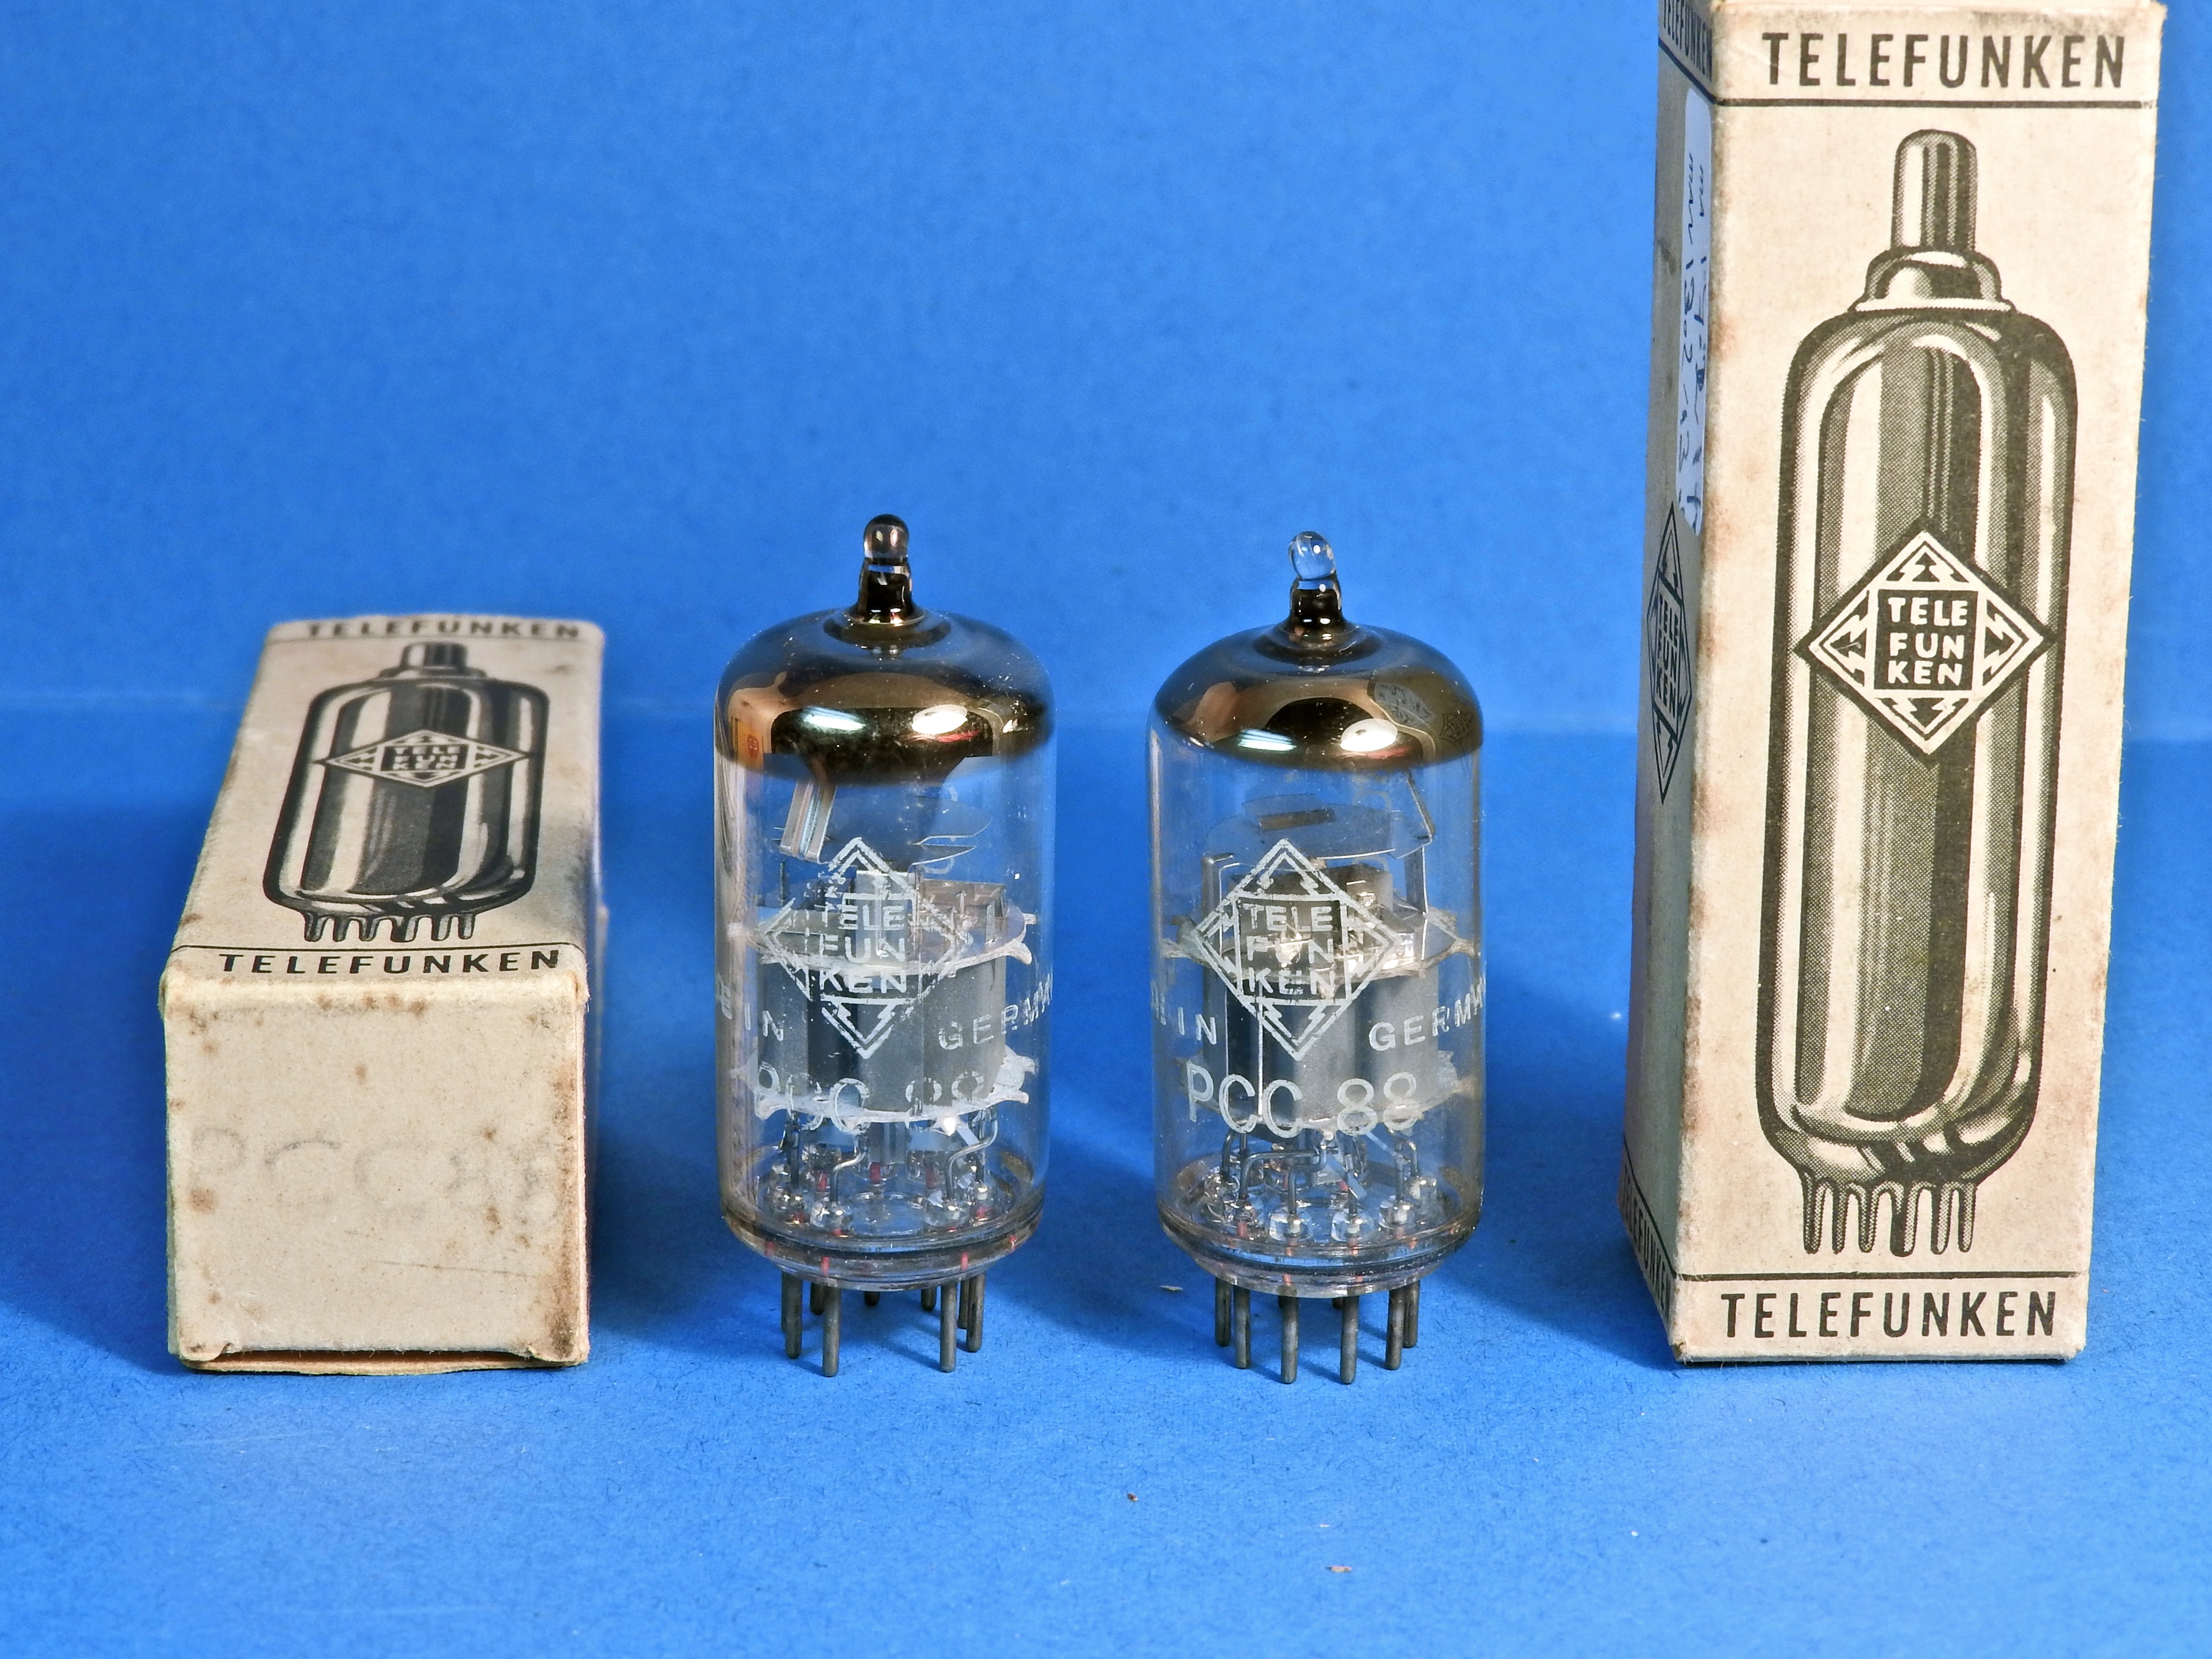 telefunken dating dating in the odyssey years